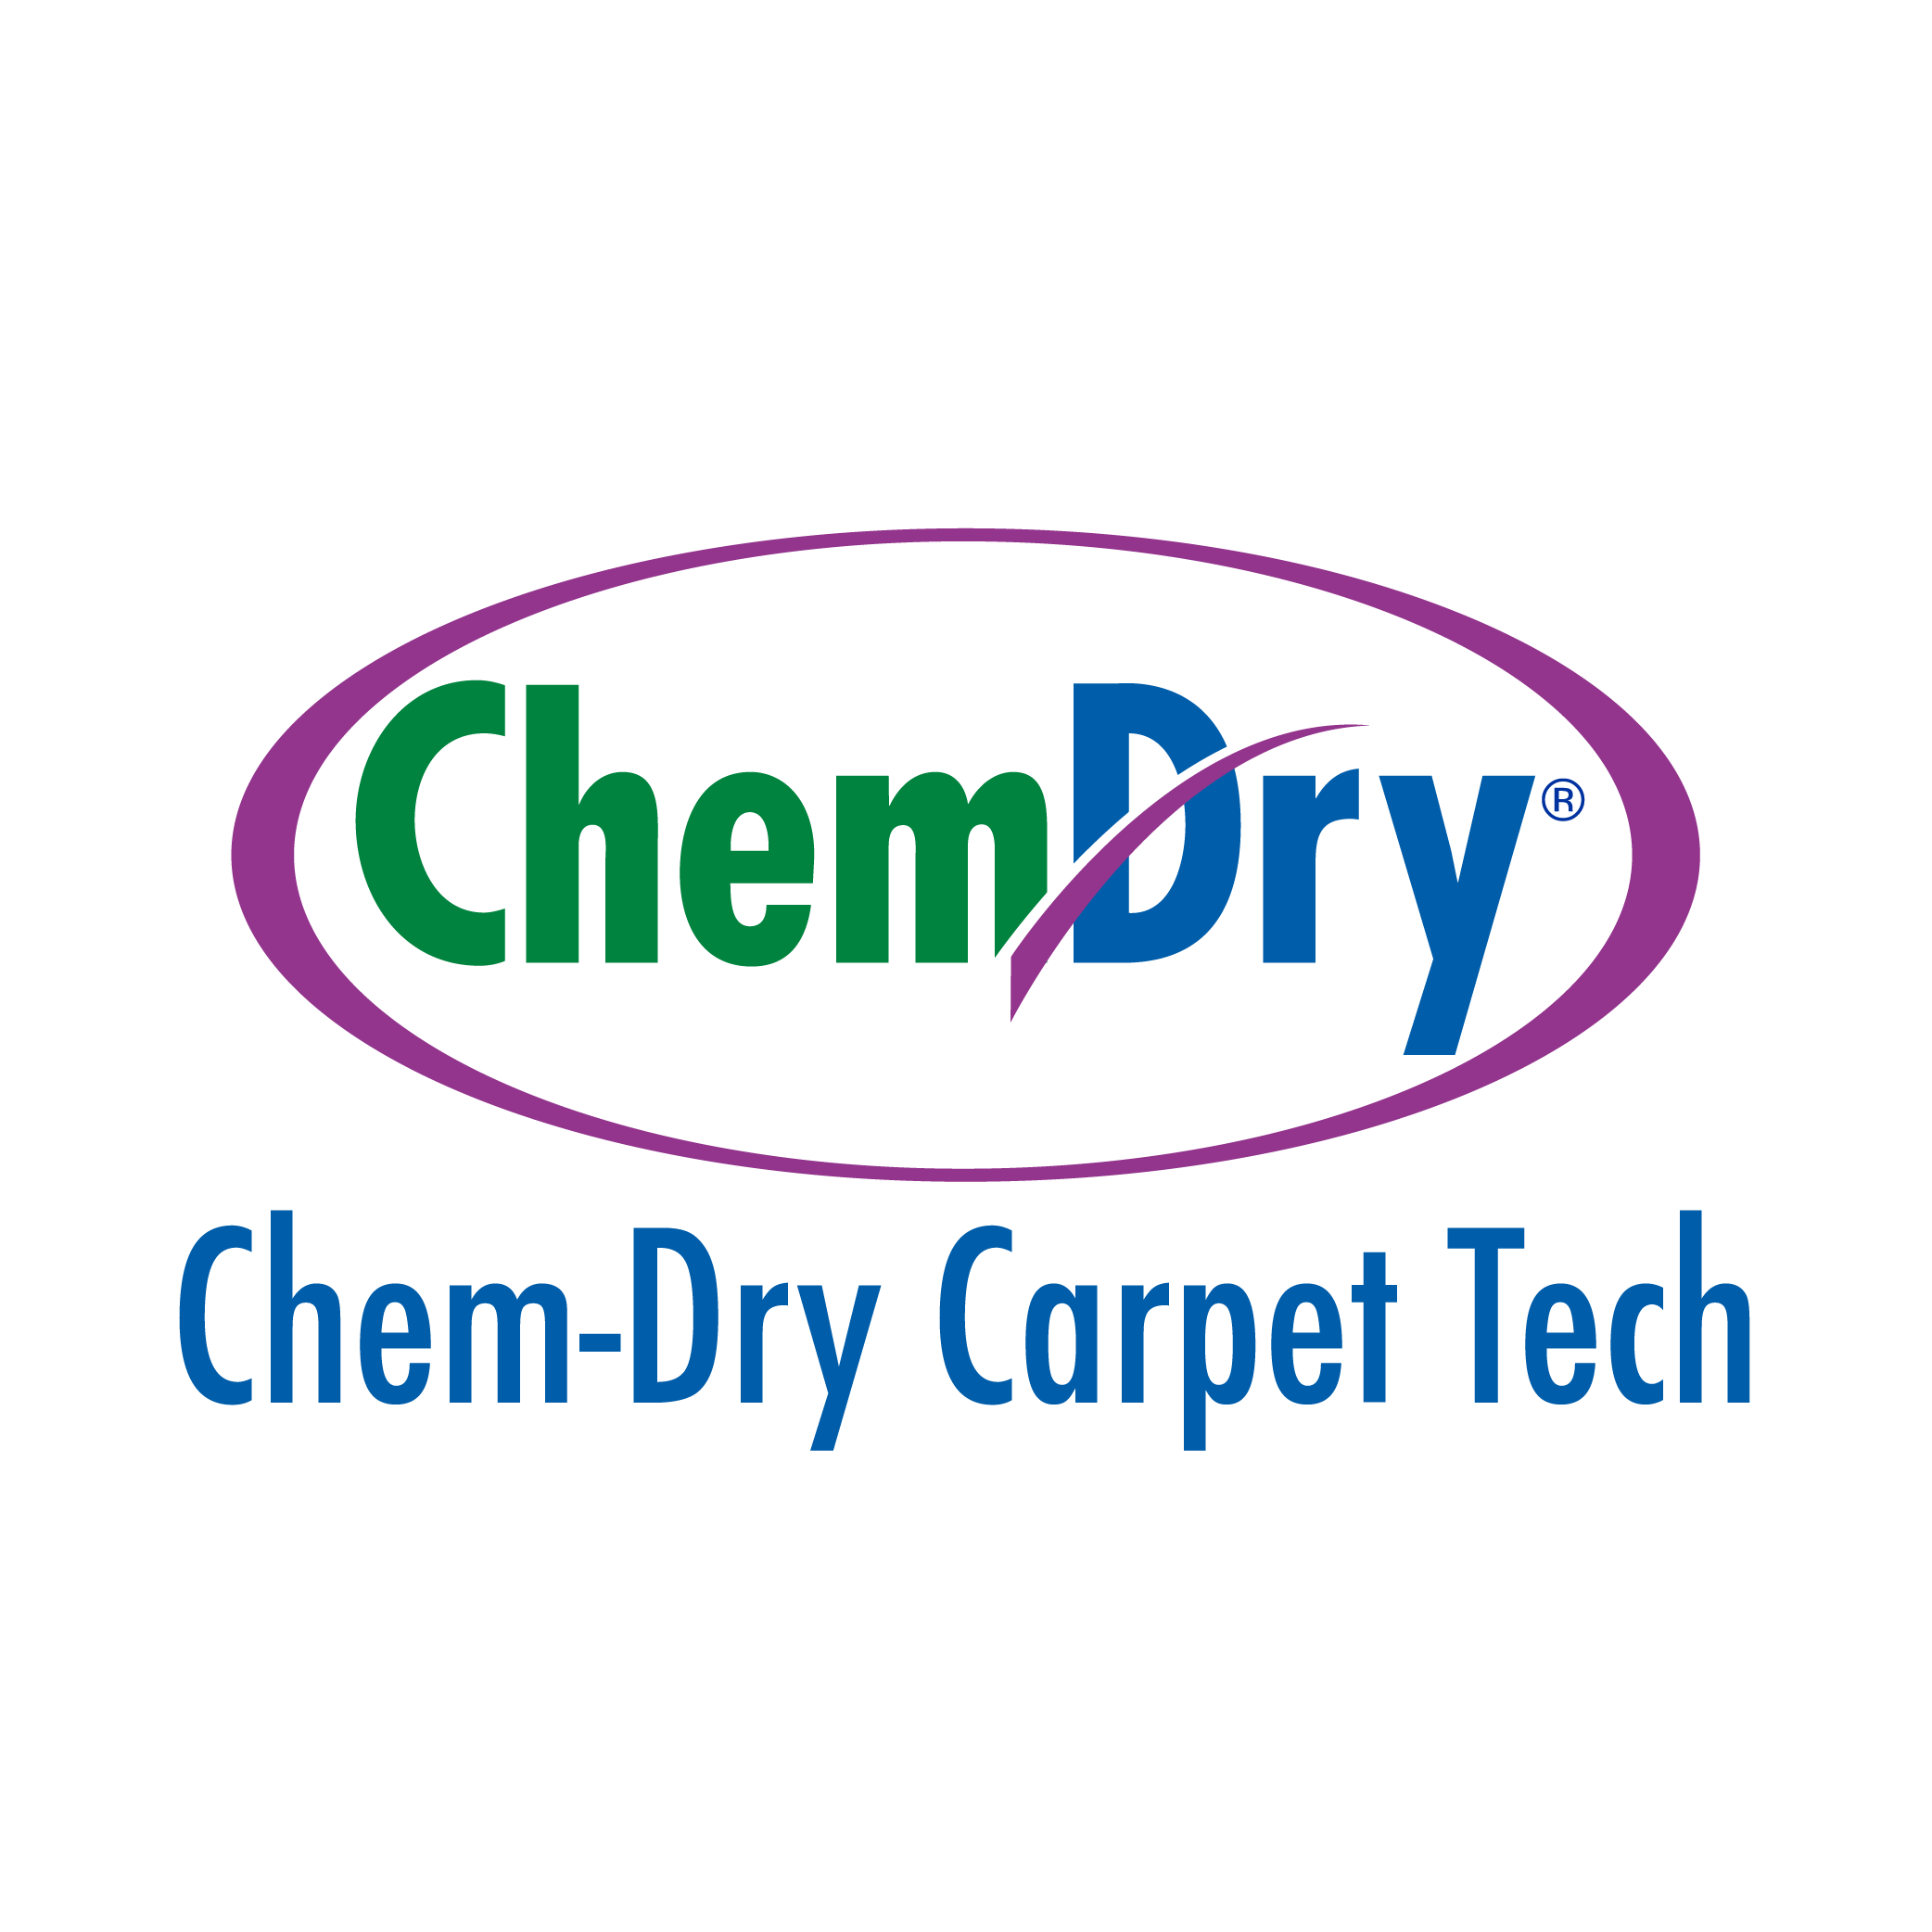 Chem-Dry Carpet Tech Simi Valley - Simi Valley, CA 93063 - (805)244-8725 | ShowMeLocal.com